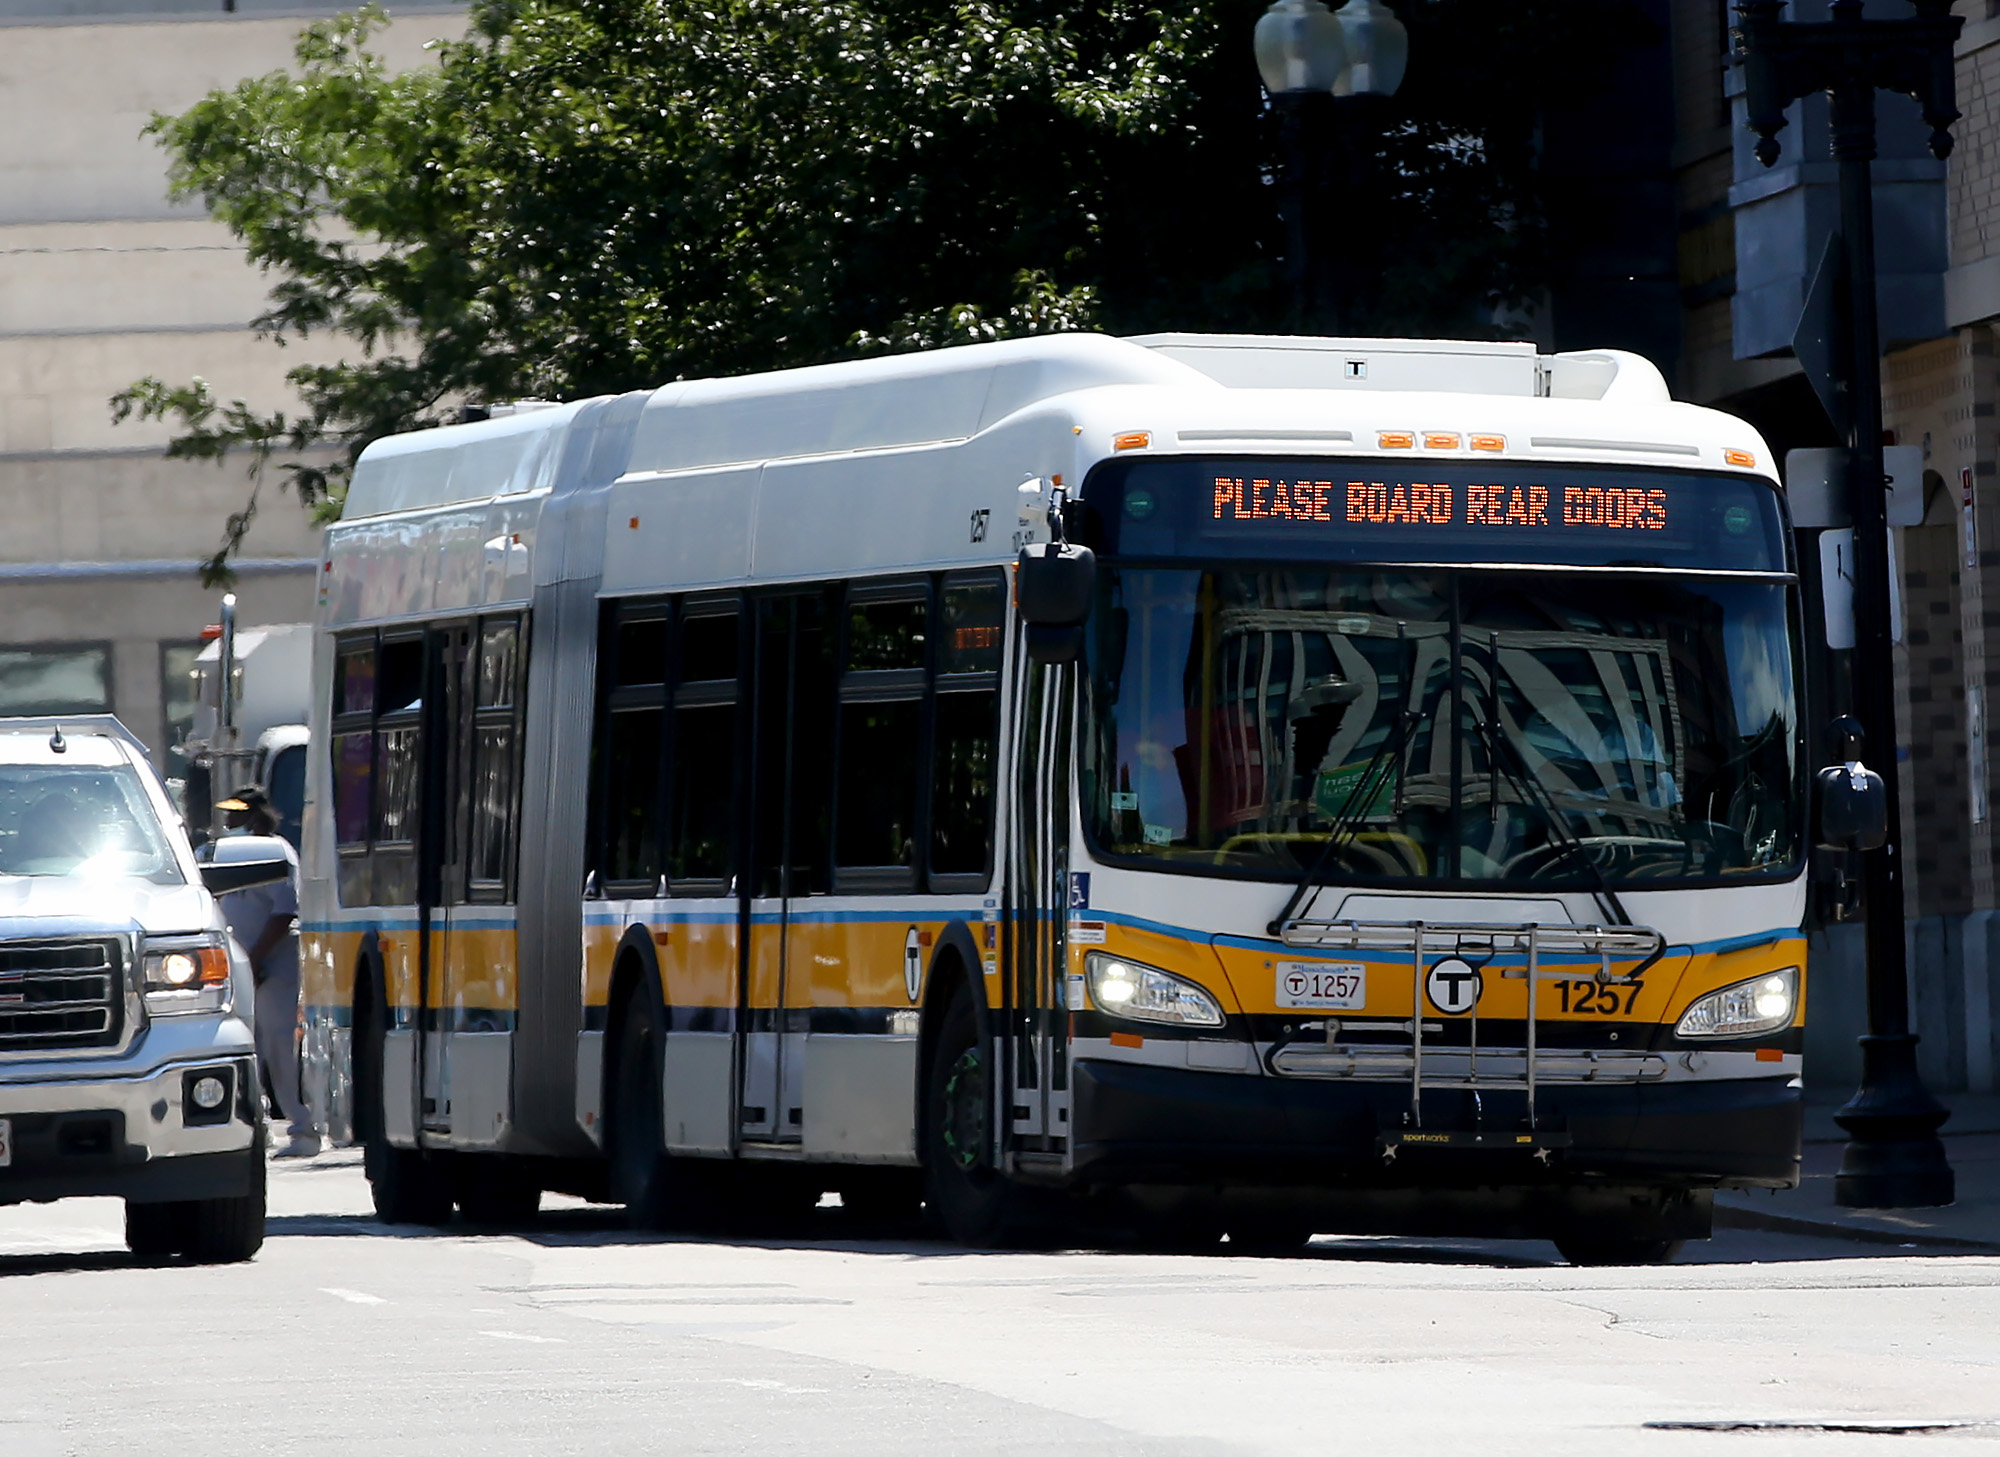 Ferry, weekend commuter service slashed as MBTA rolls out service cuts